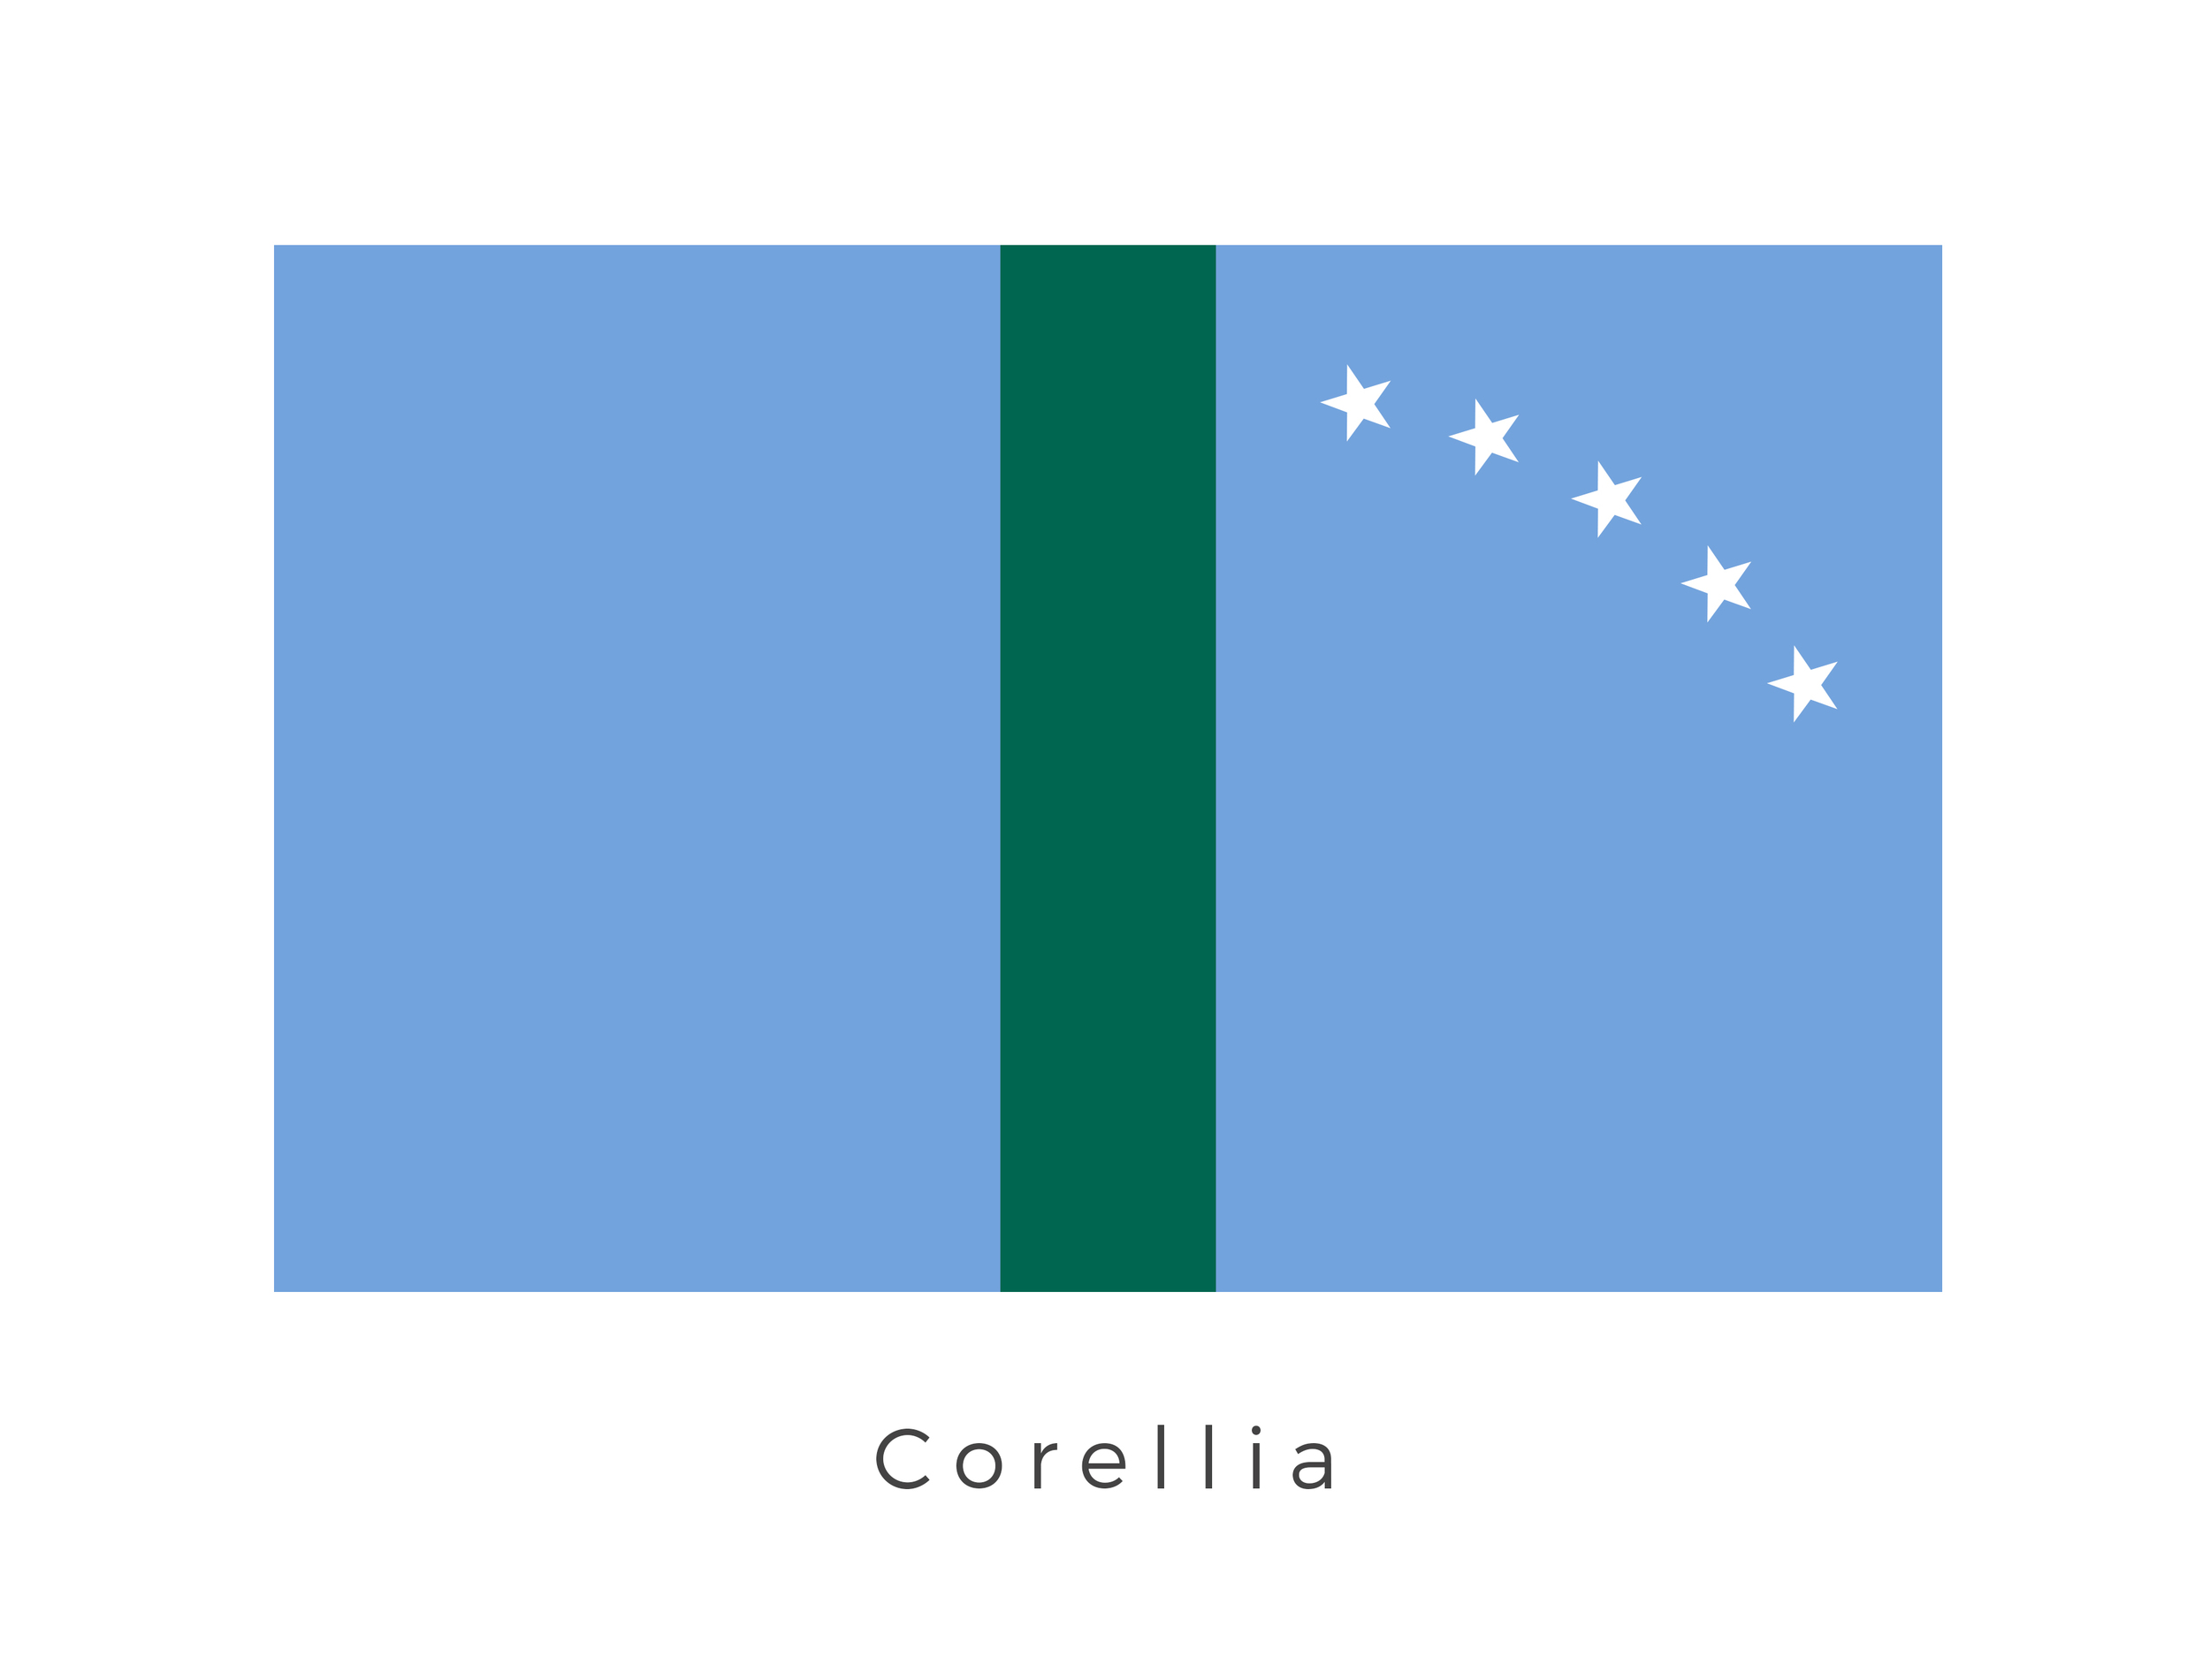 Corellia  was the capital planet of the Corellian system, which included Selonia, Drall, Tralus, and Talus. It was also the birthplace of smuggler and New Republic General Han Solo. The five plants are represented in the curved band of stars on the right hand panel of the flag. The green strip in the middle of the flag is thought to represent Corellians place among the first and foremost hyperspace explorers.